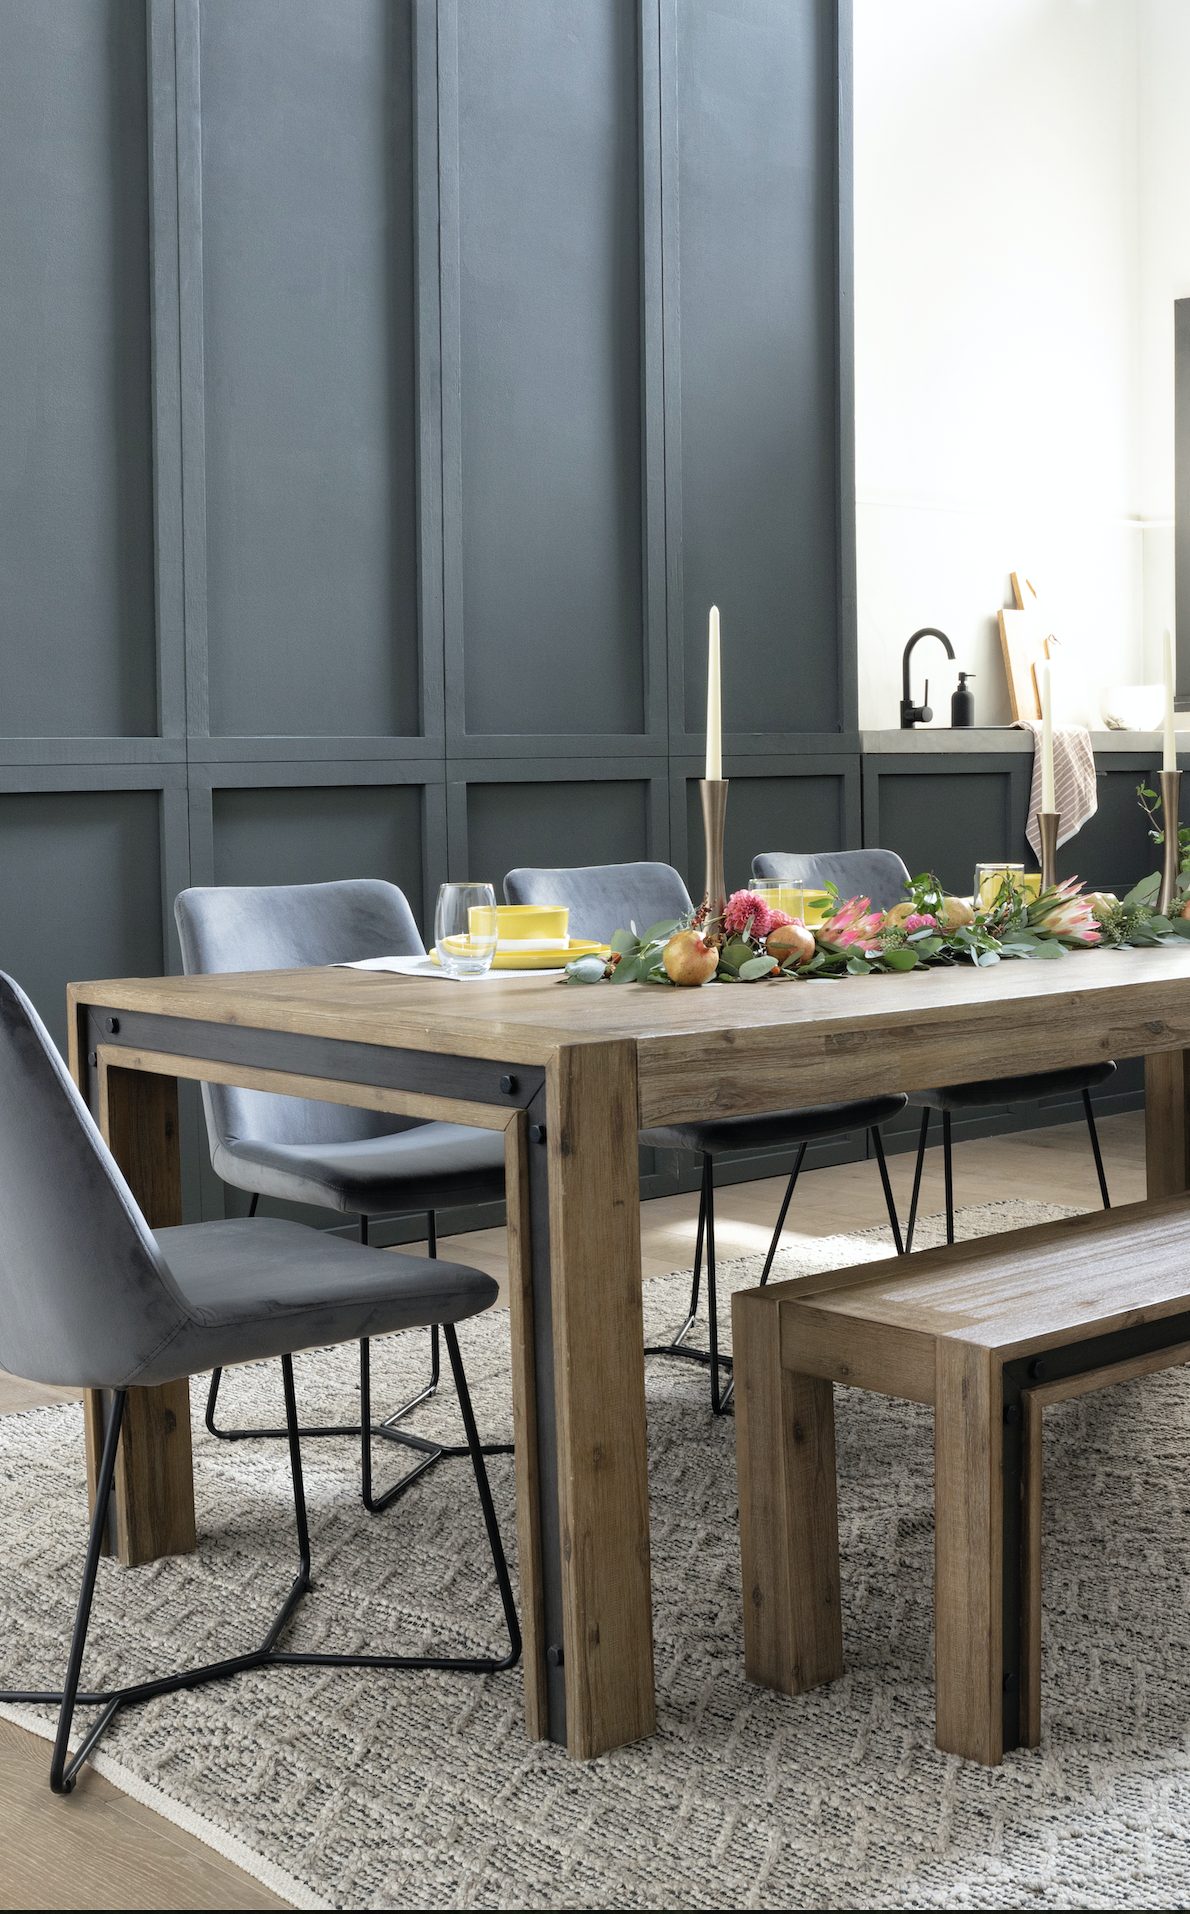 Amos Extension Dining Table Extension Dining Table Dining Table